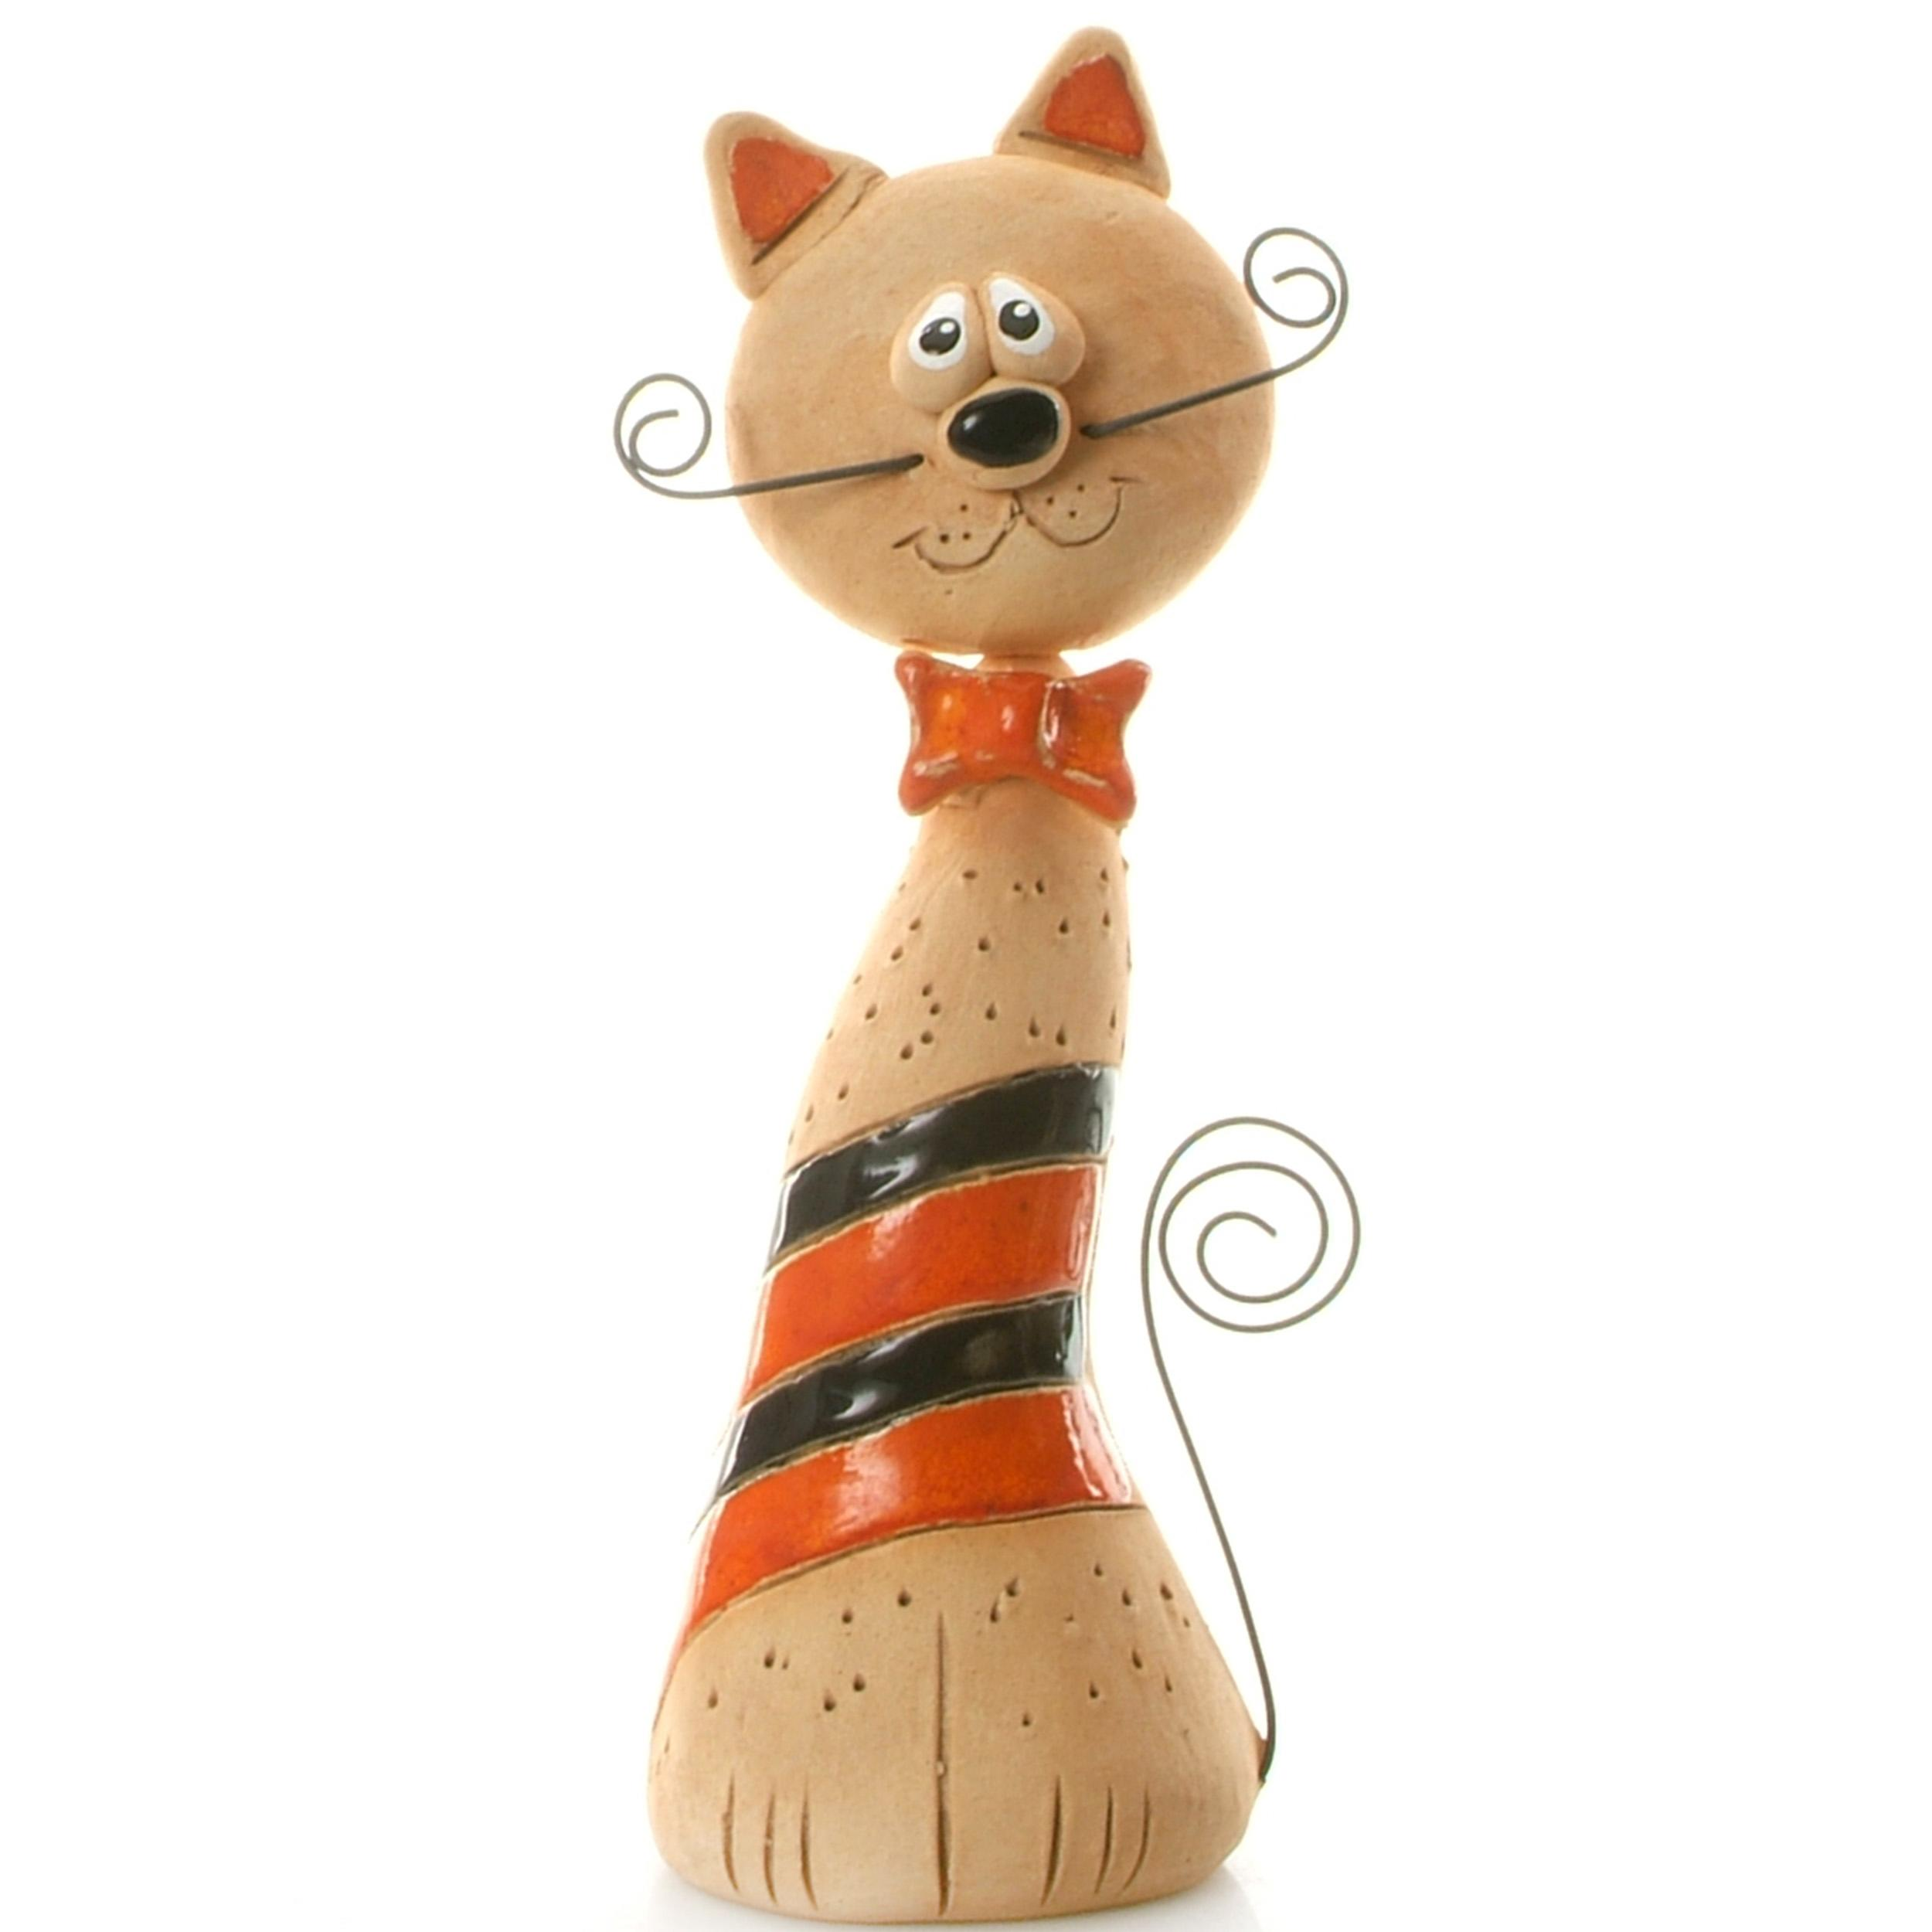 Ceramic Crazy Cat with Wire Whiskers and Tail